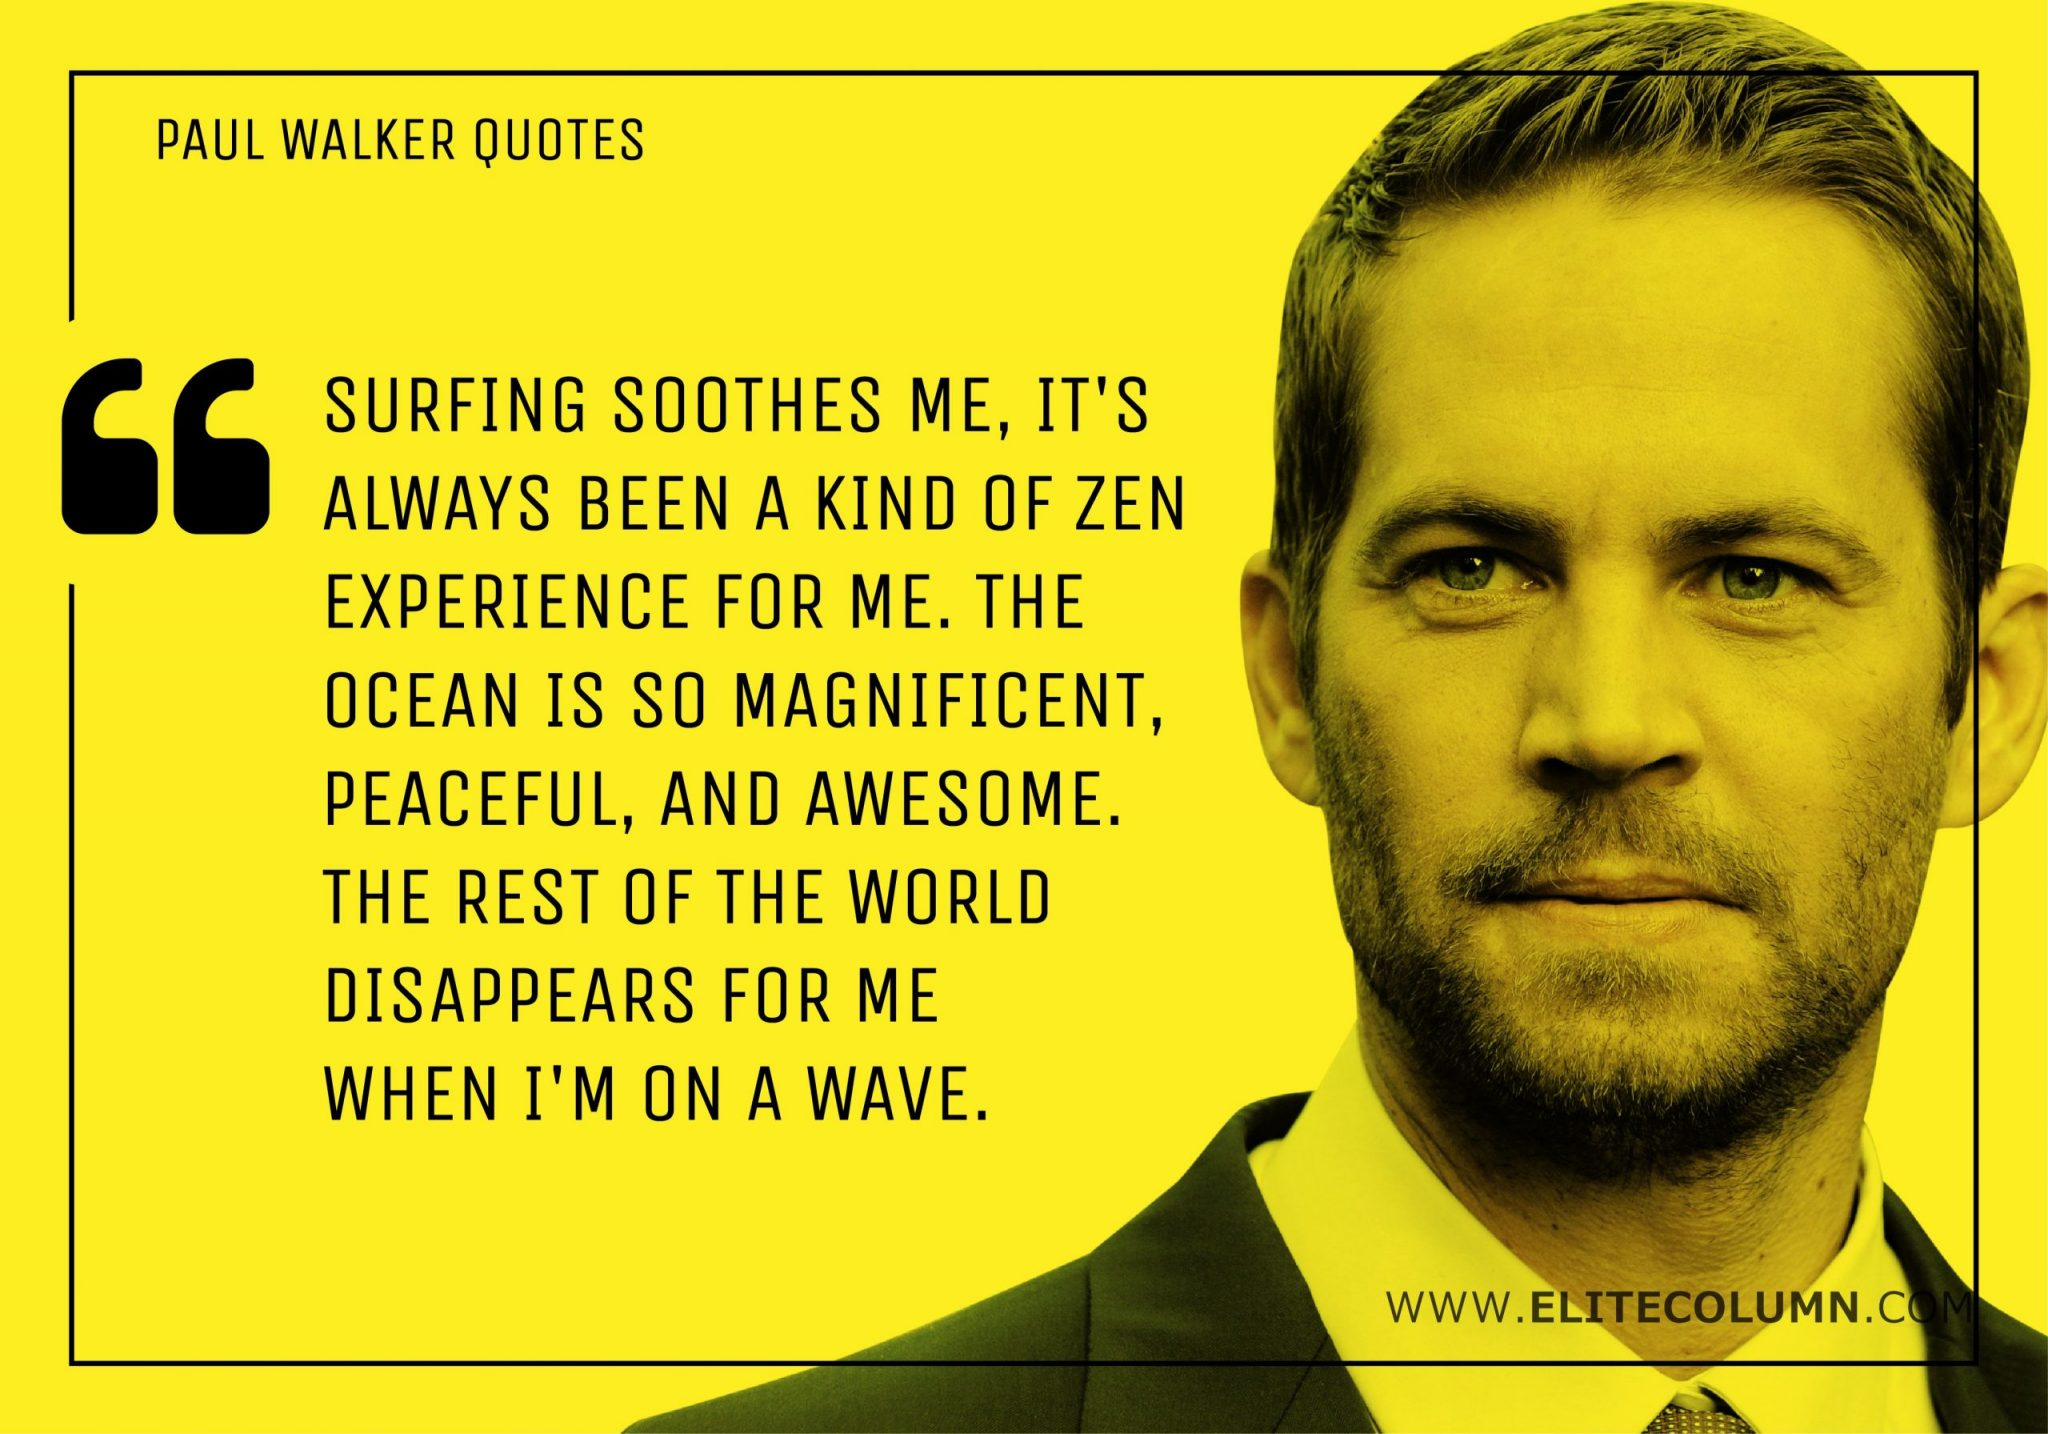 Paul Walker Quotes (12)